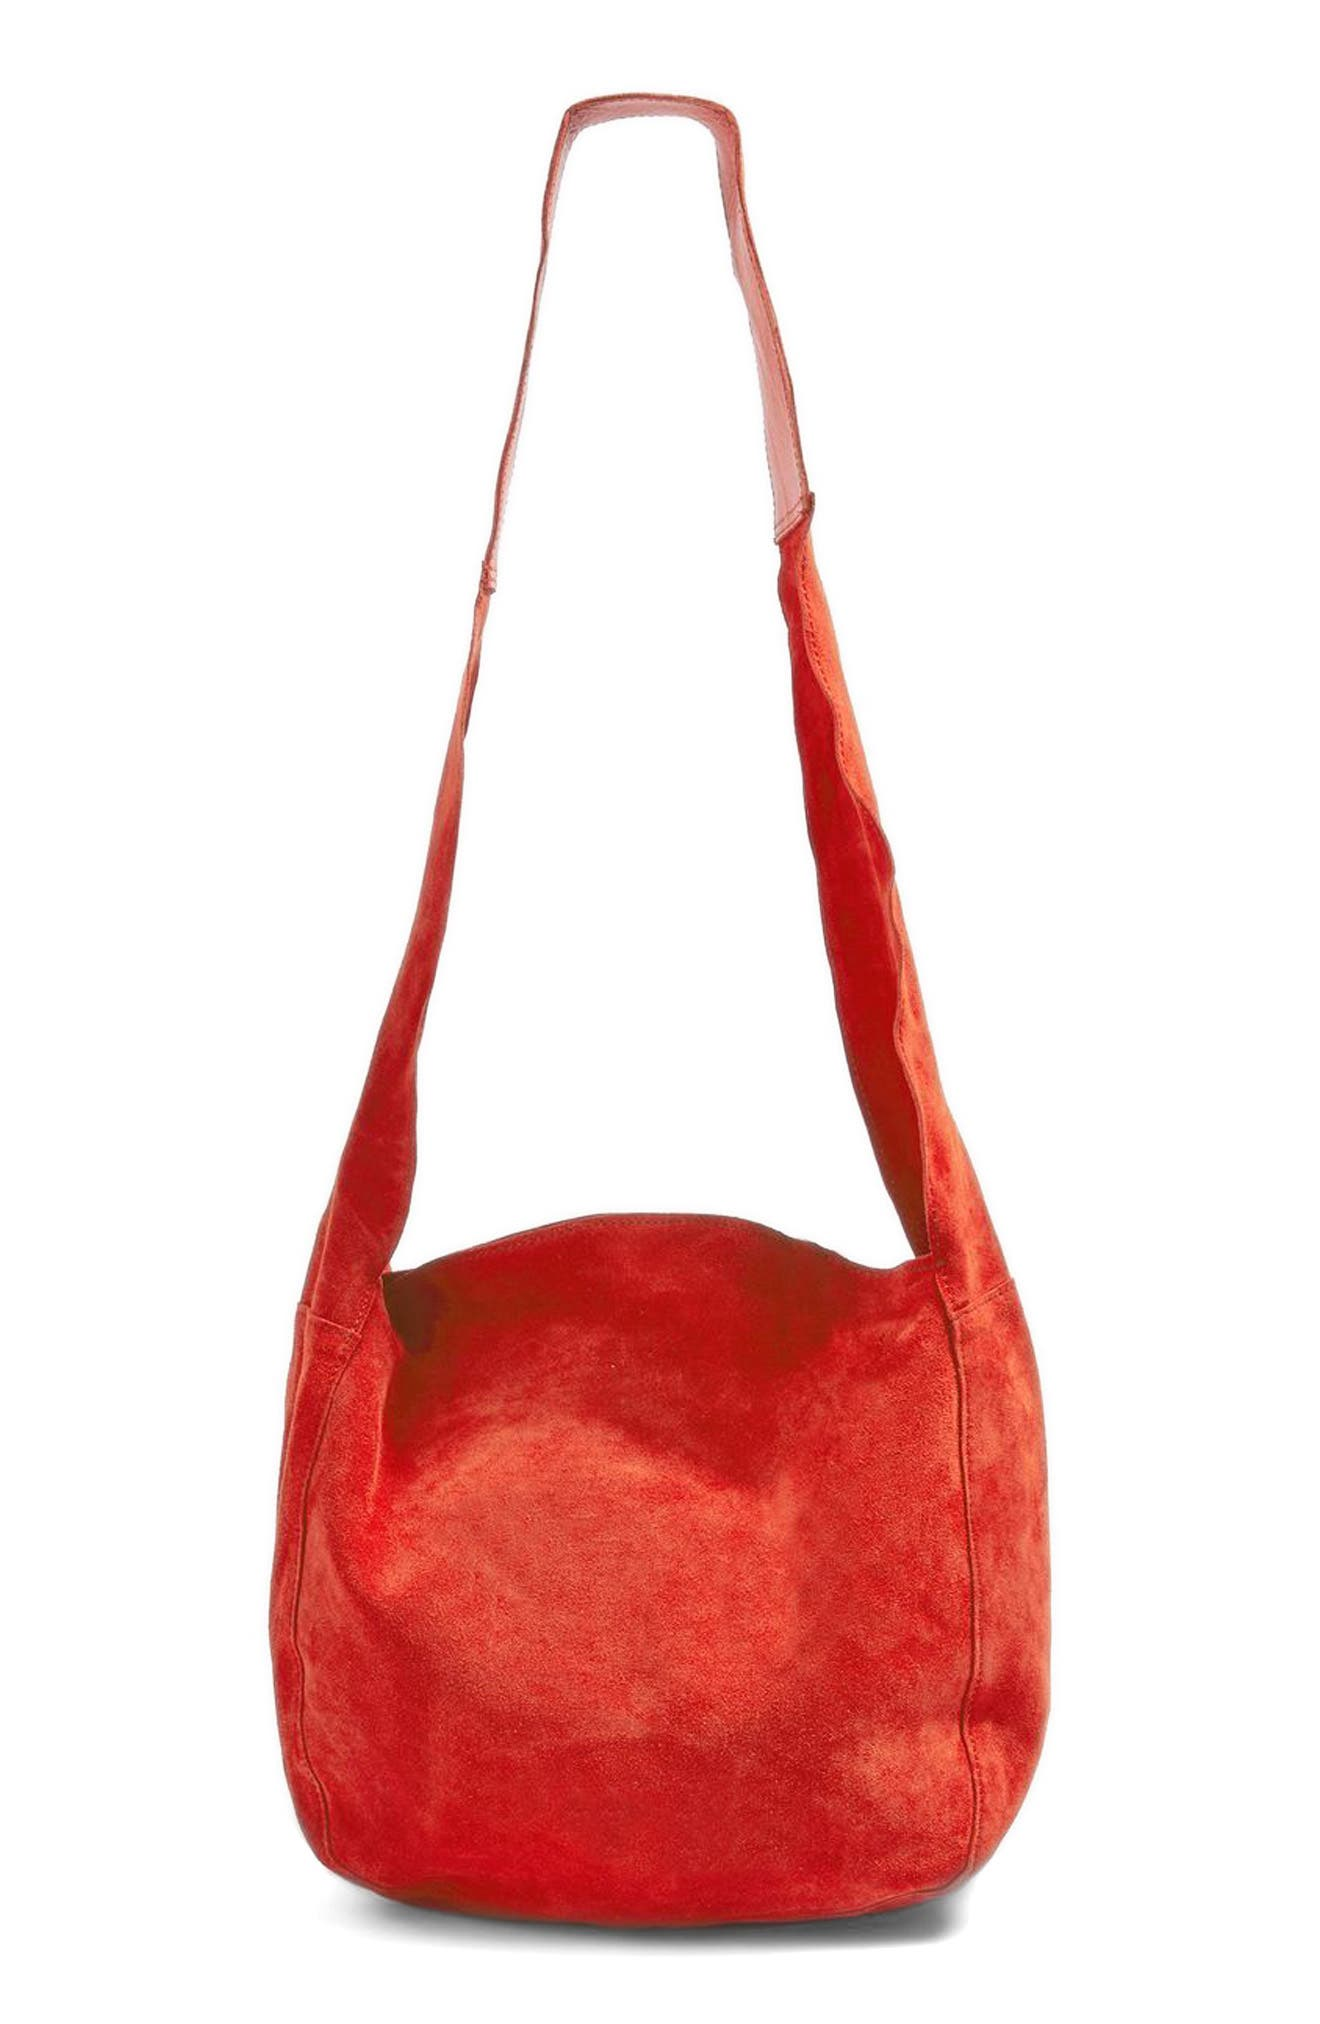 Topshop Susie Mini Leather Hobo